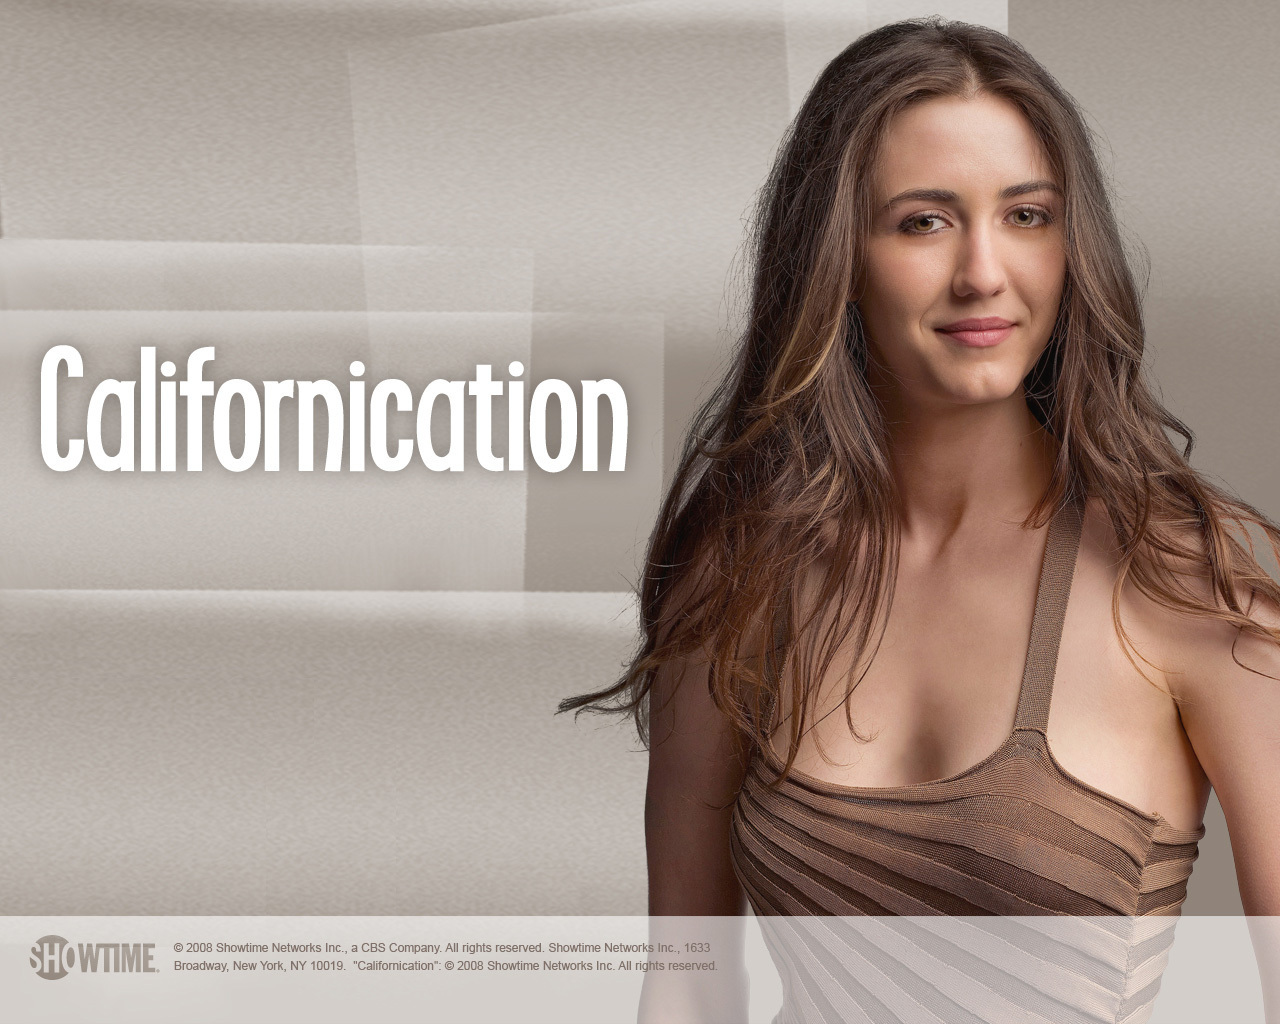 Californication S01-05 DVDRip | S06-S07E01-E12 HDTV Californicationwallpape